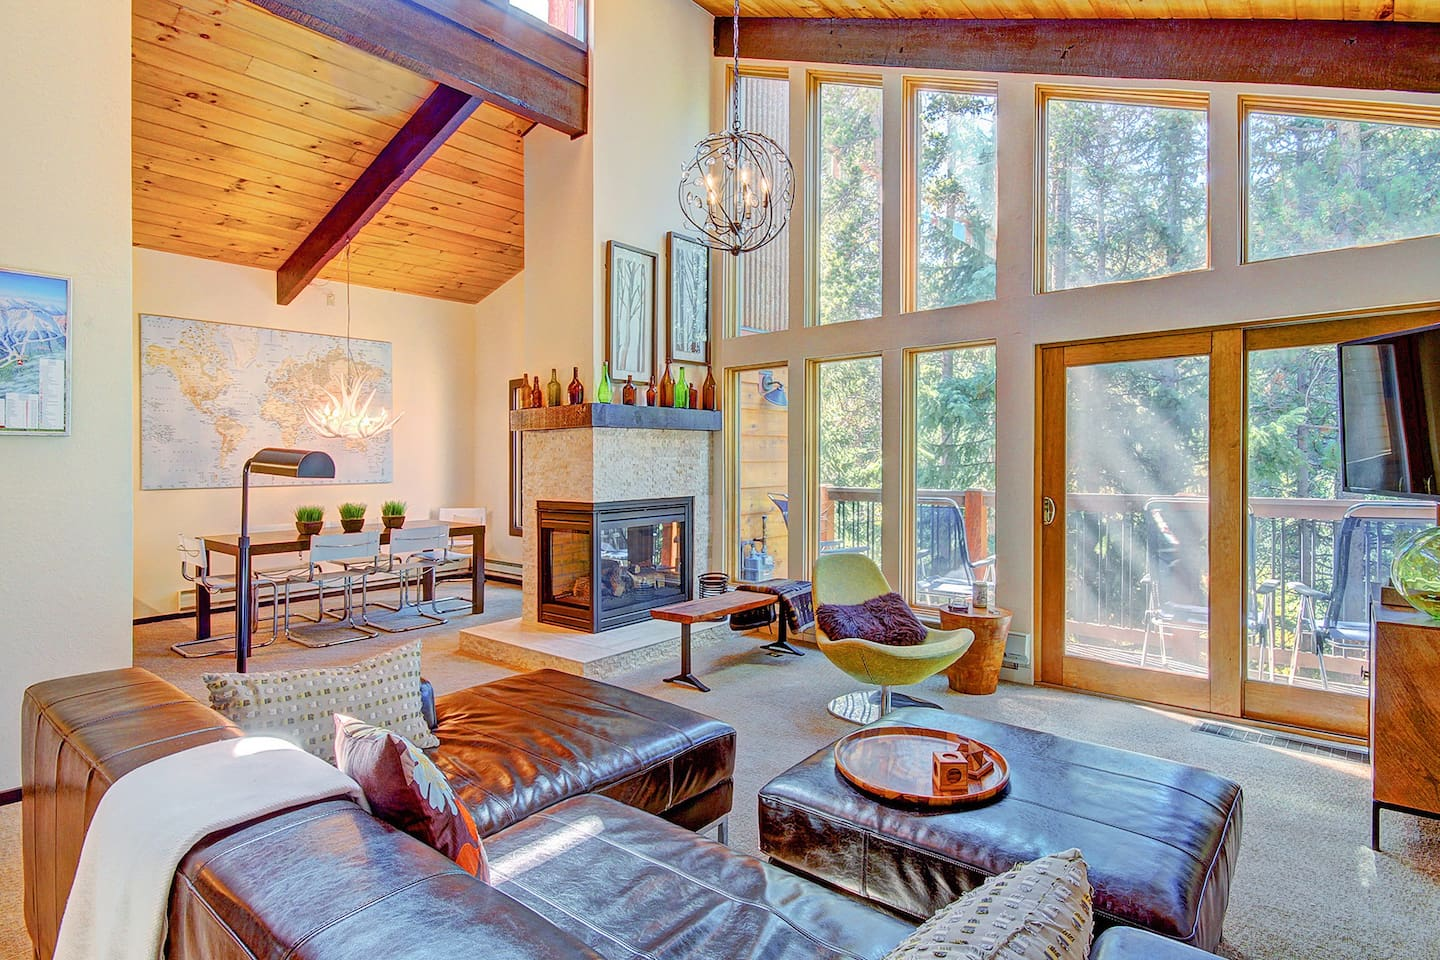 Tannenbaum by the River - a SkyRun Breckenridge Property - Spacious living room with gas fireplace, TV, lofted ceilings